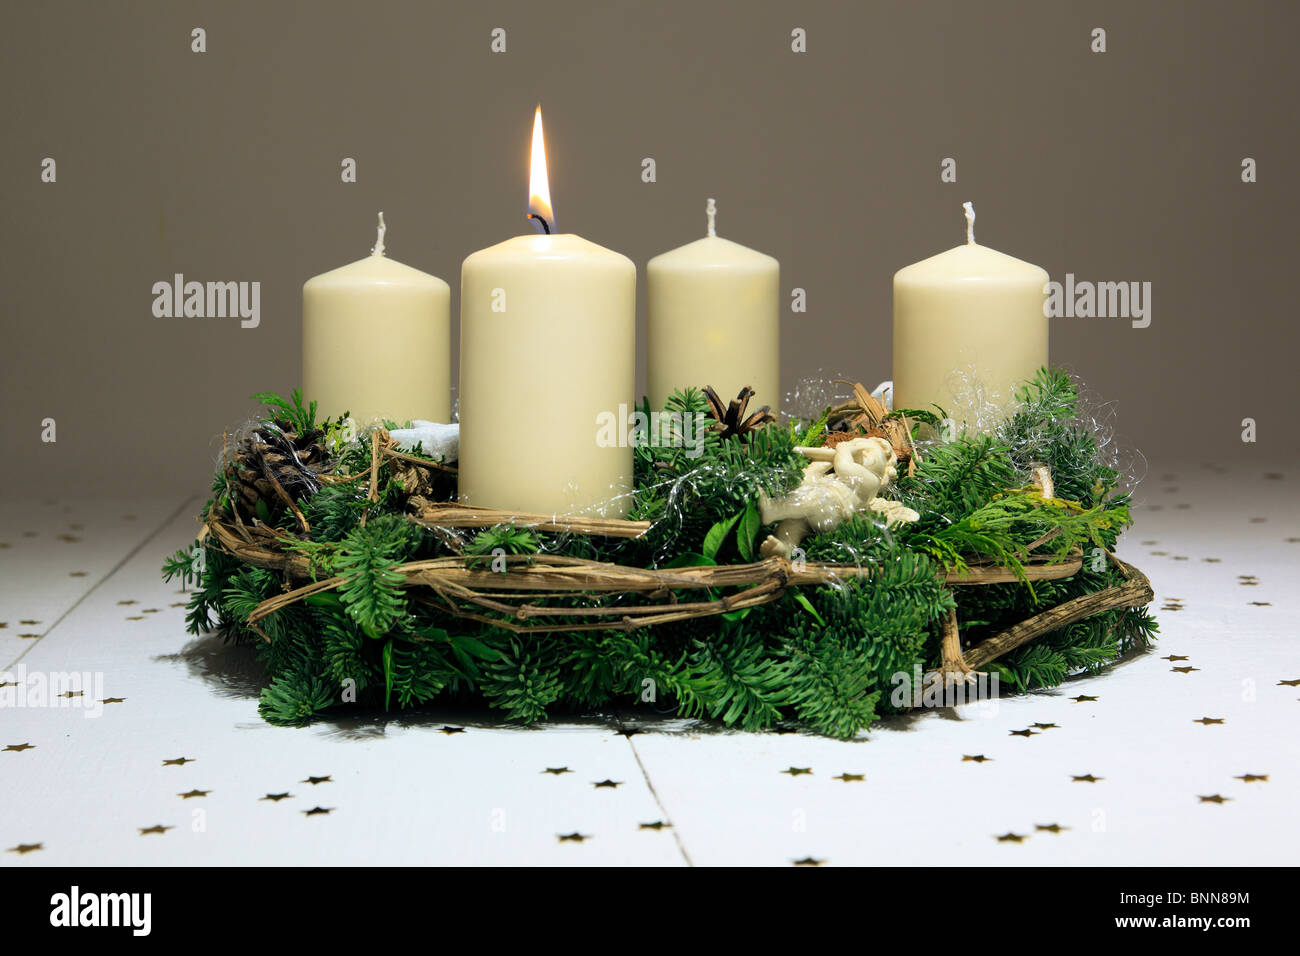 1 4 advent advent wreath advent time deko decoration adornment angels stock photo royalty free. Black Bedroom Furniture Sets. Home Design Ideas